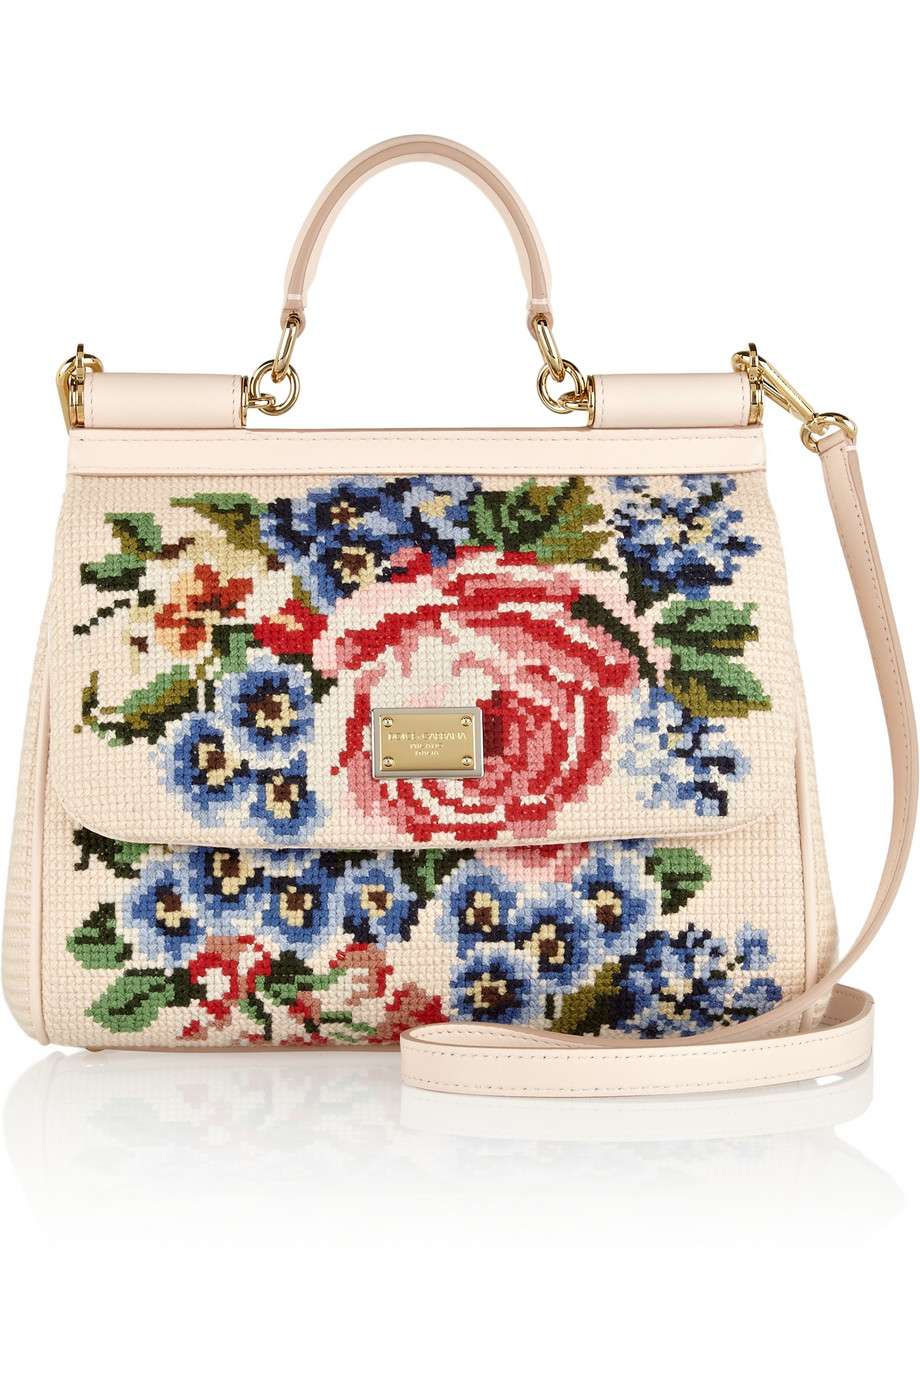 Dolce Amp Gabbana The Sicily Medium Floralembroidered